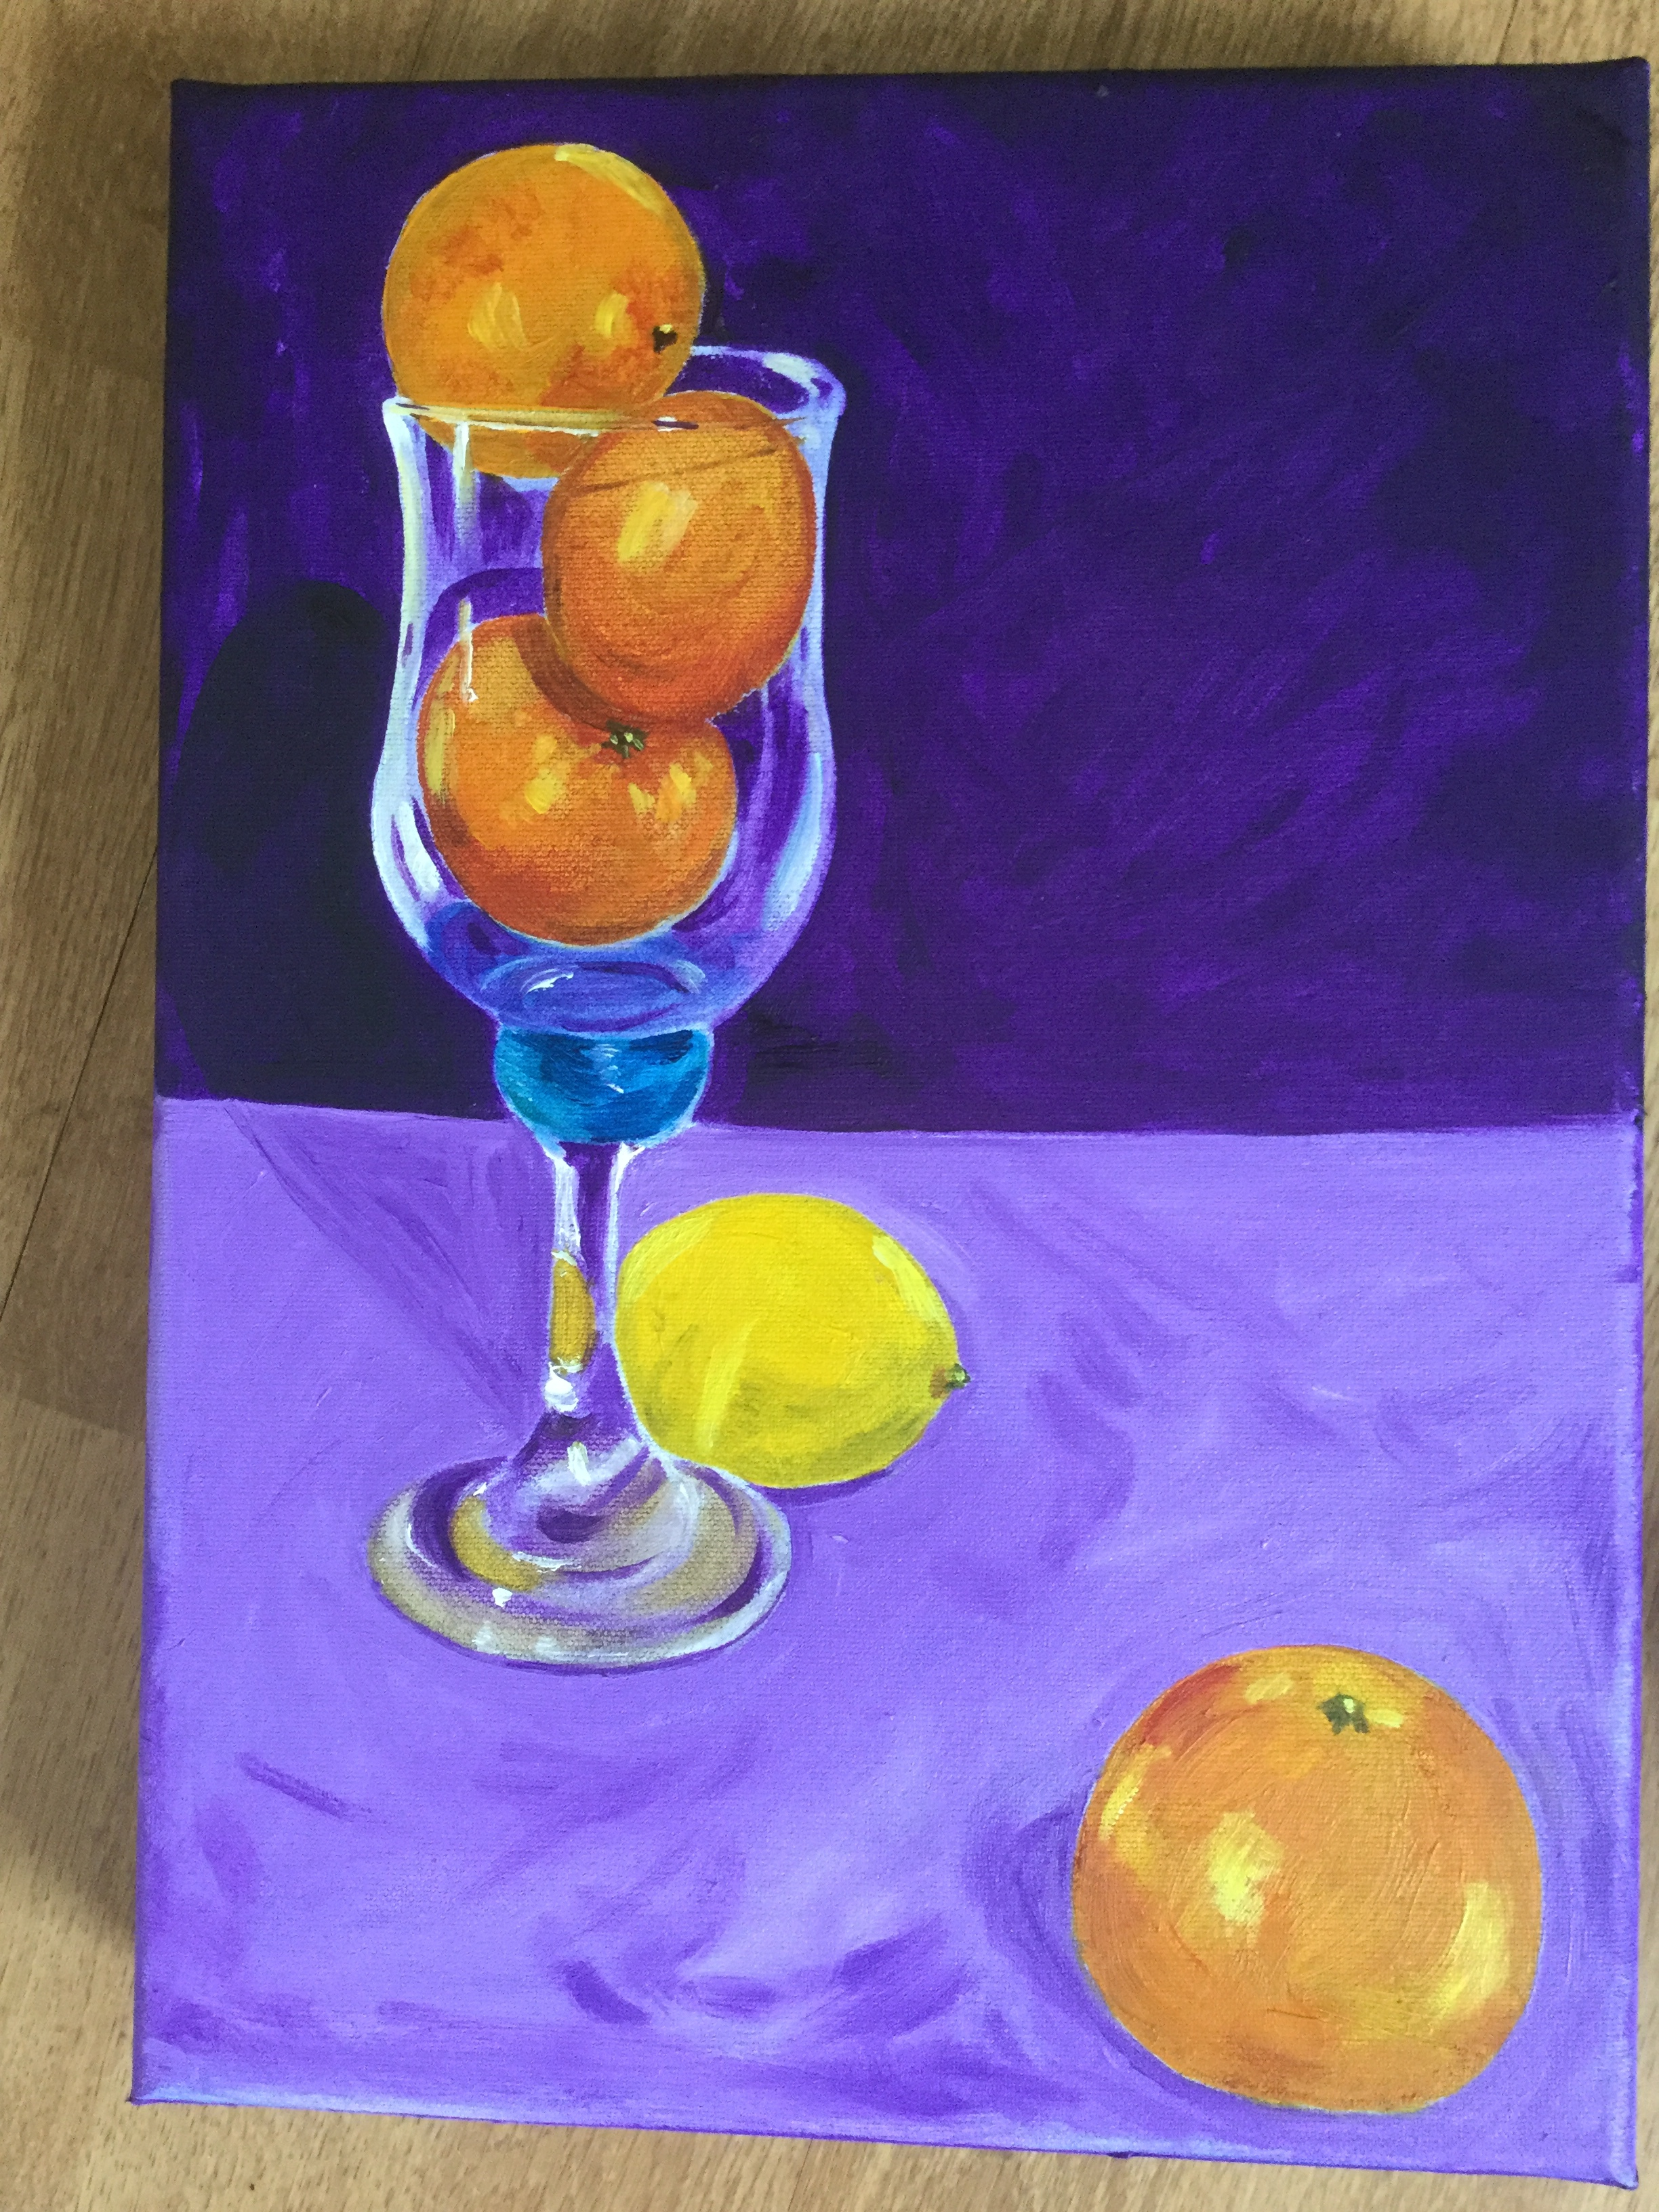 Study in Purple and Orange